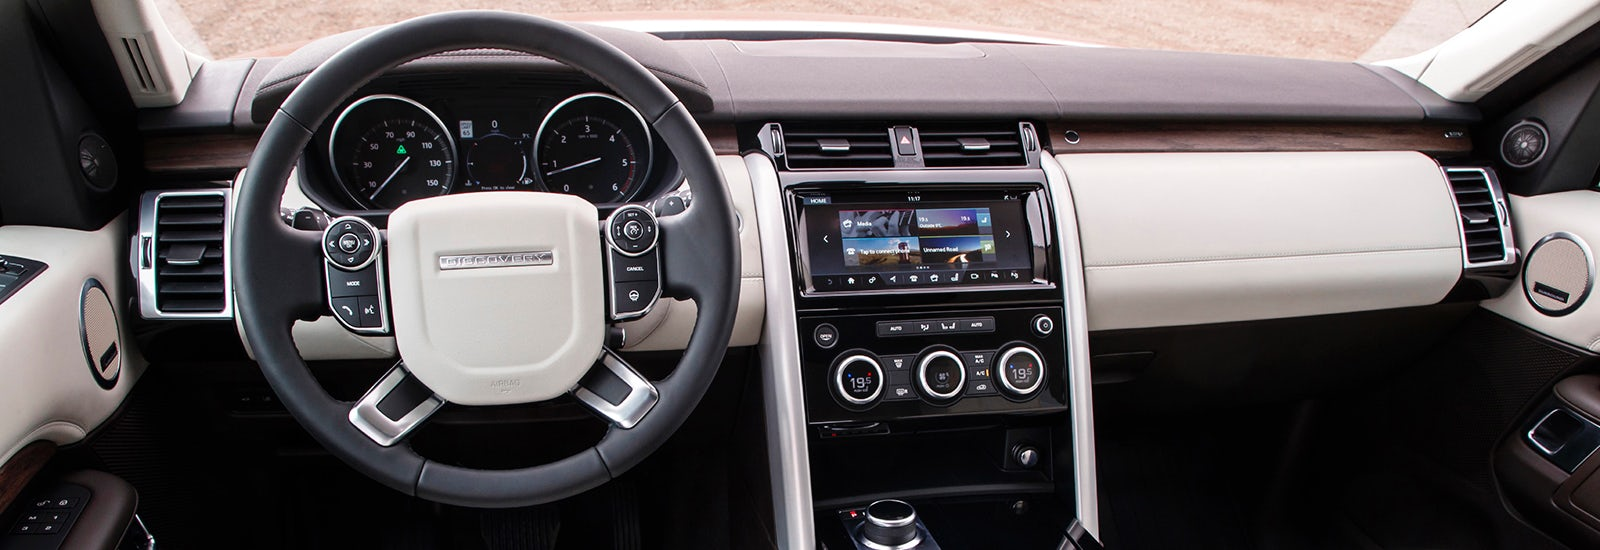 Land rover discovery svx 4x4 suv price specs release date - Land rover discovery interior dimensions ...